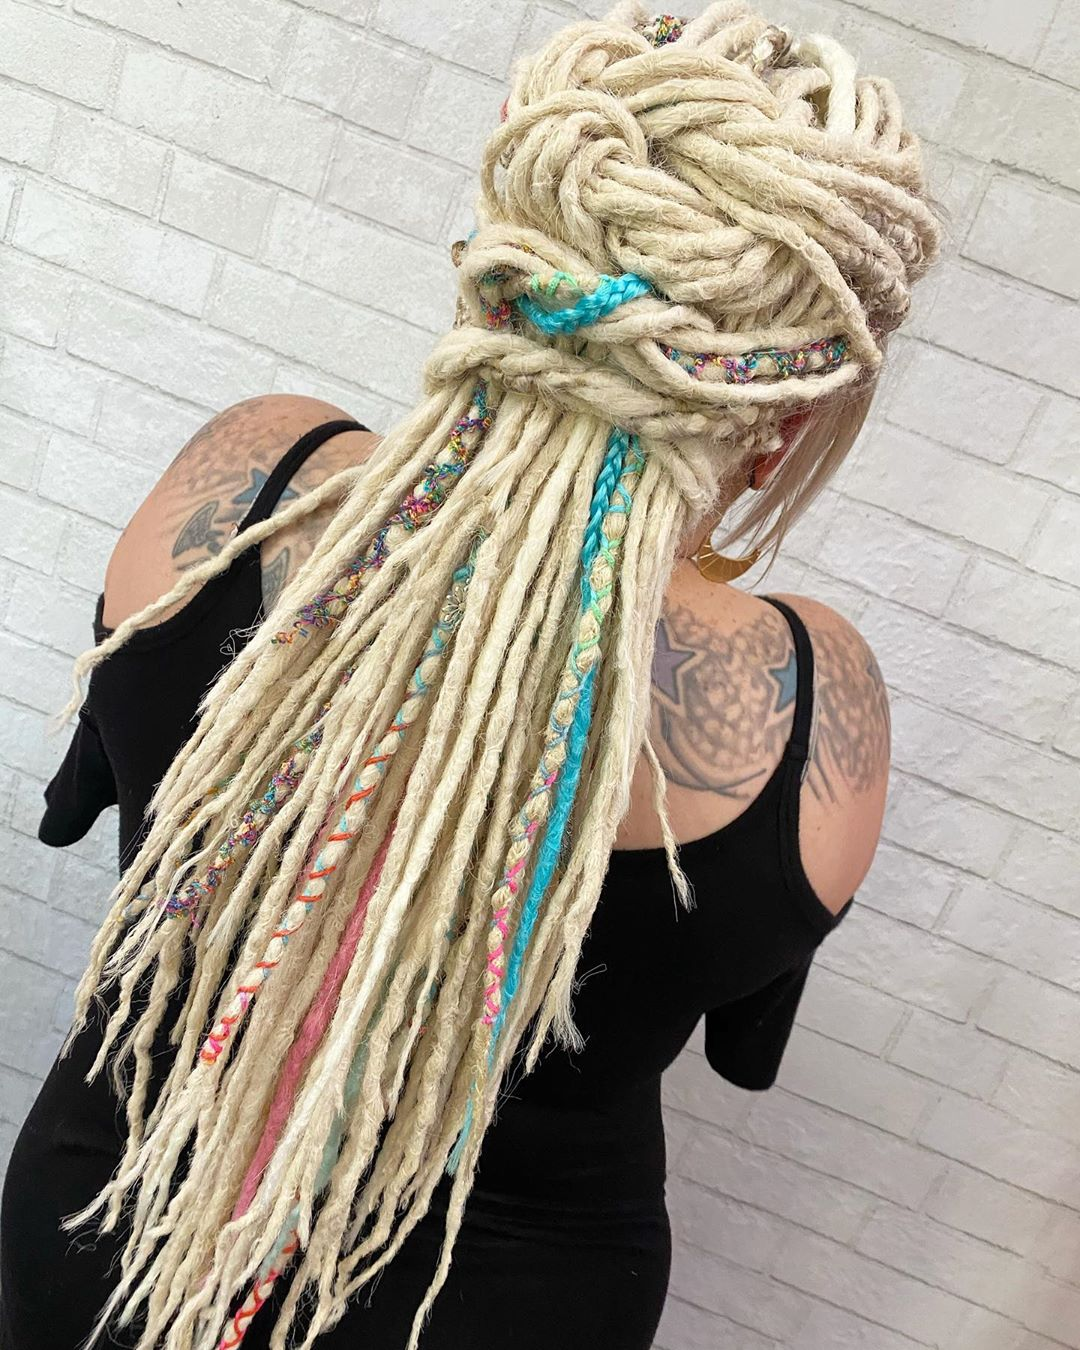 Dread Designs for Long Dreadlocks